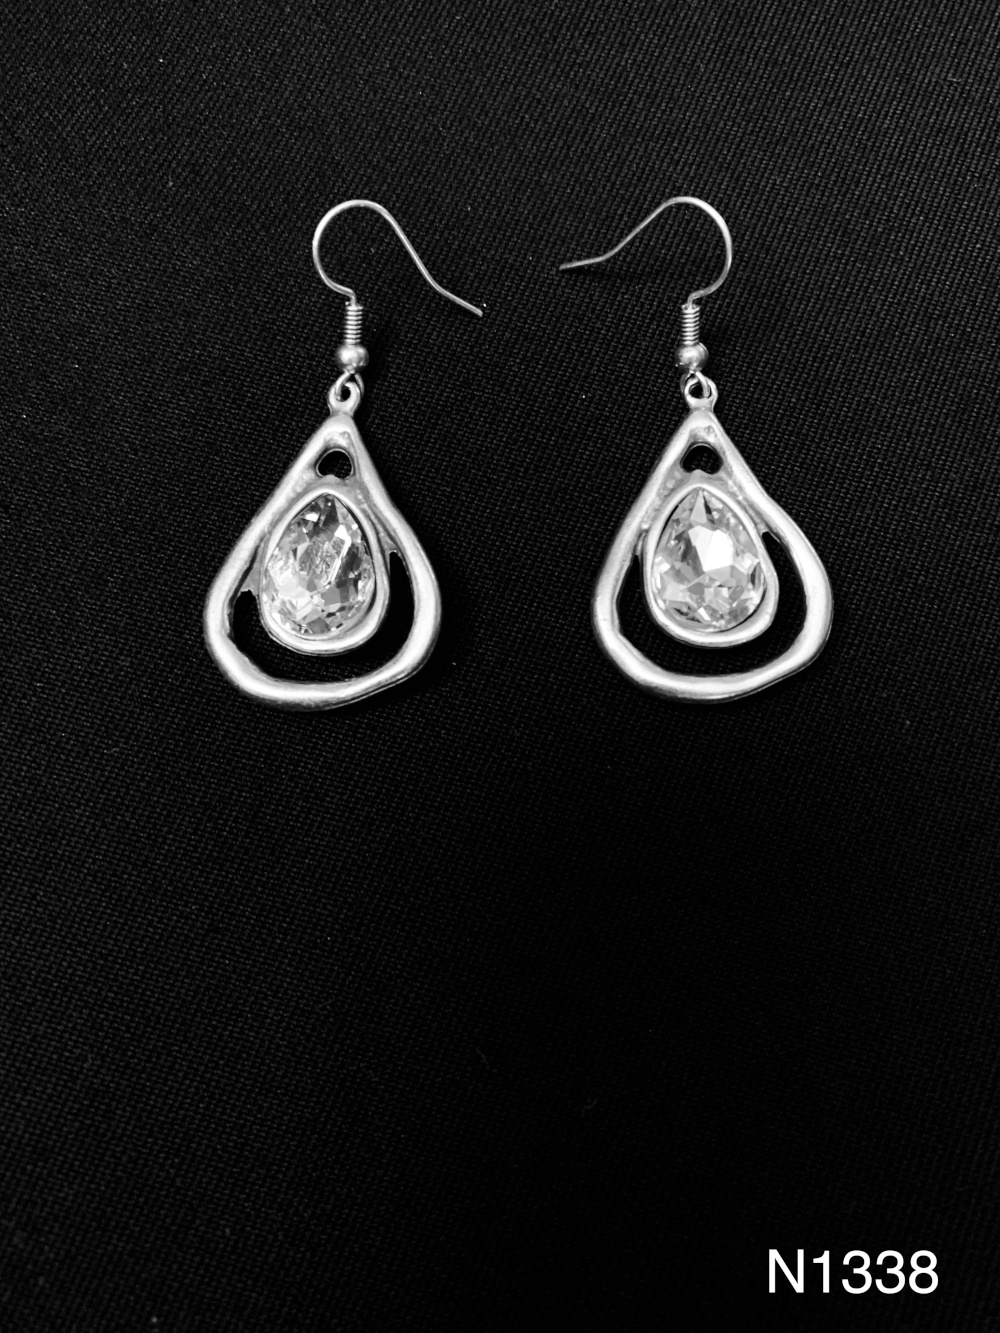 GLASS STONE EARRINGS N1338